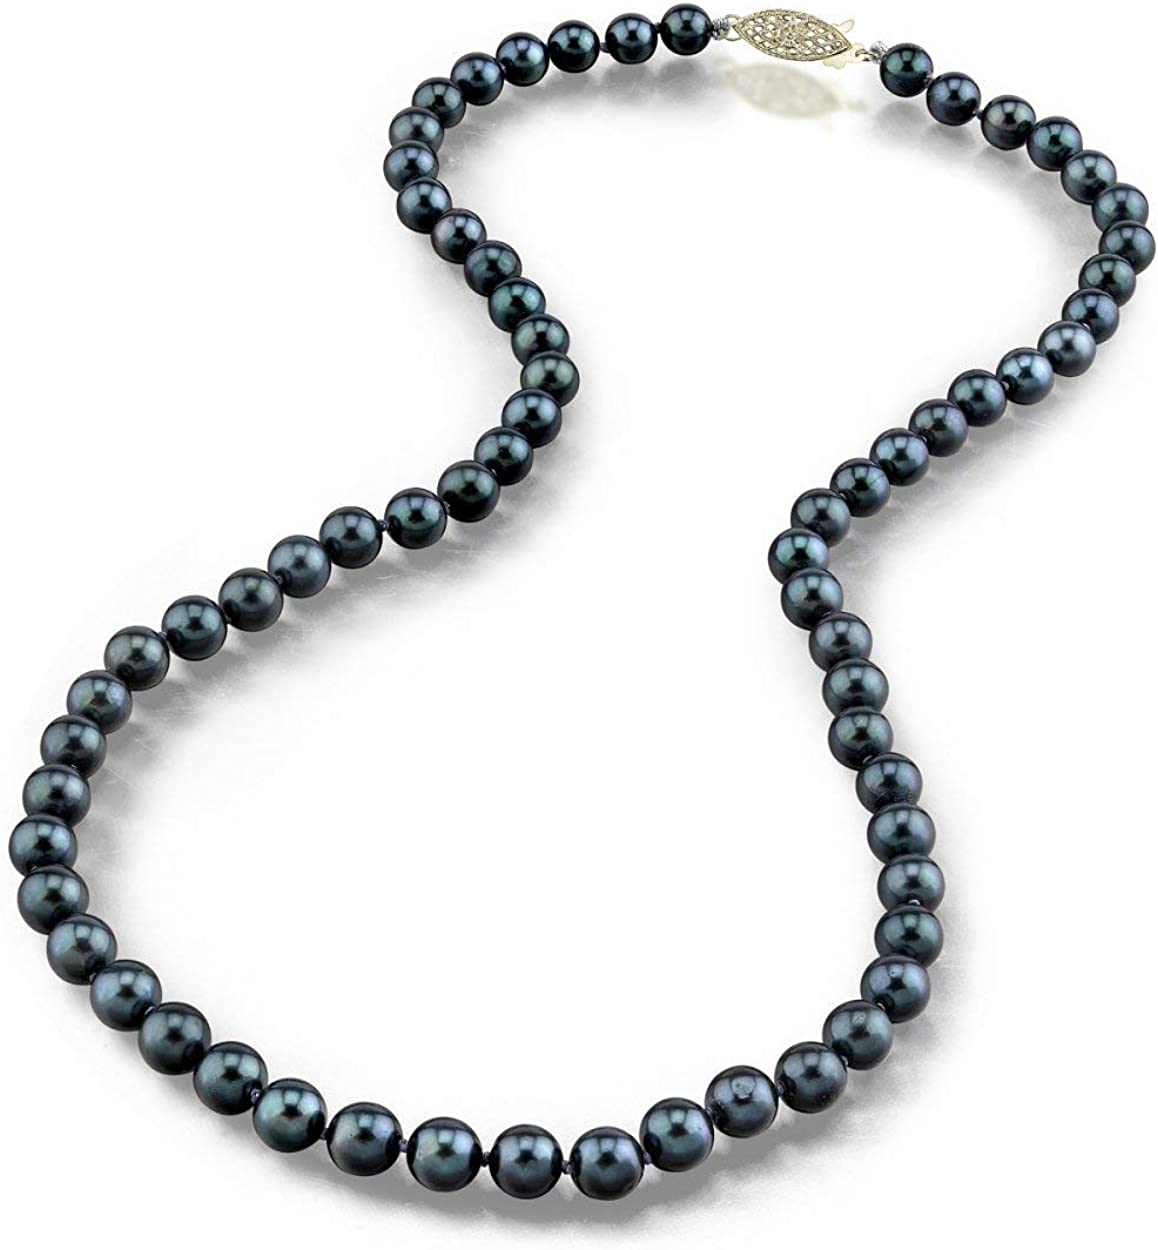 THE PEARL SOURCE 14K Gold 6.5-7.0mm AAA Quality Round Genuine Black Japanese Akoya Saltwater Cultured Pearl Necklace in 24